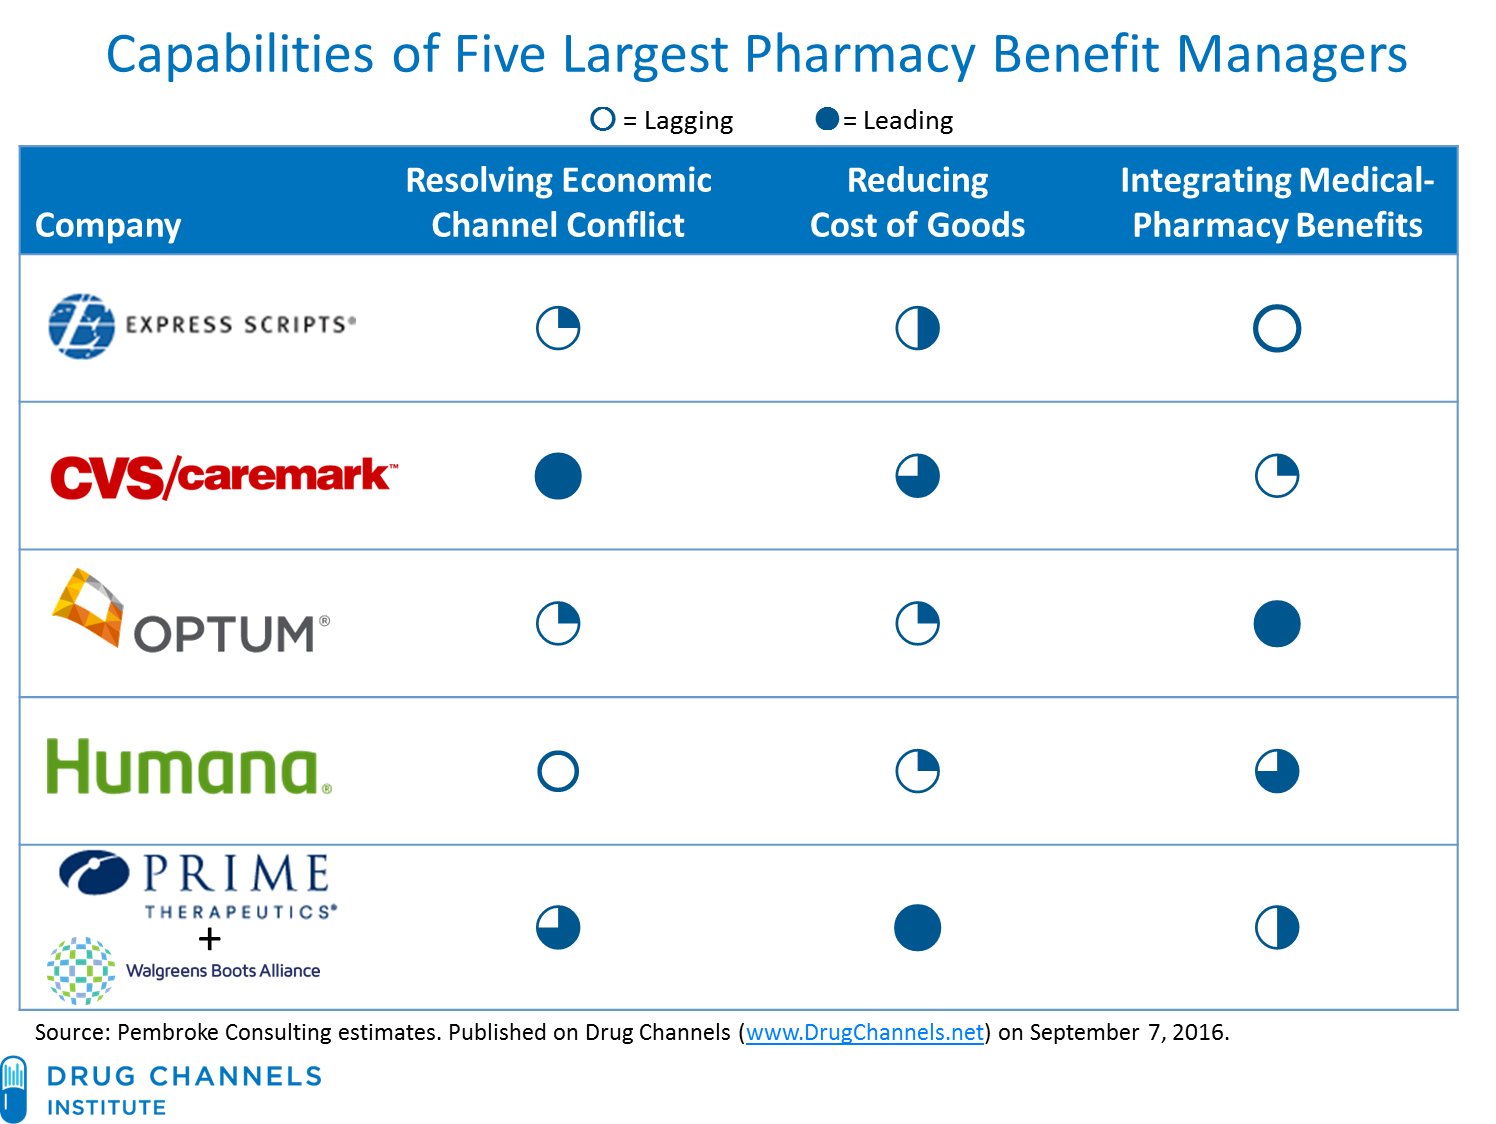 Drug Channels: Why the Walgreens/Prime Deal Could Transform